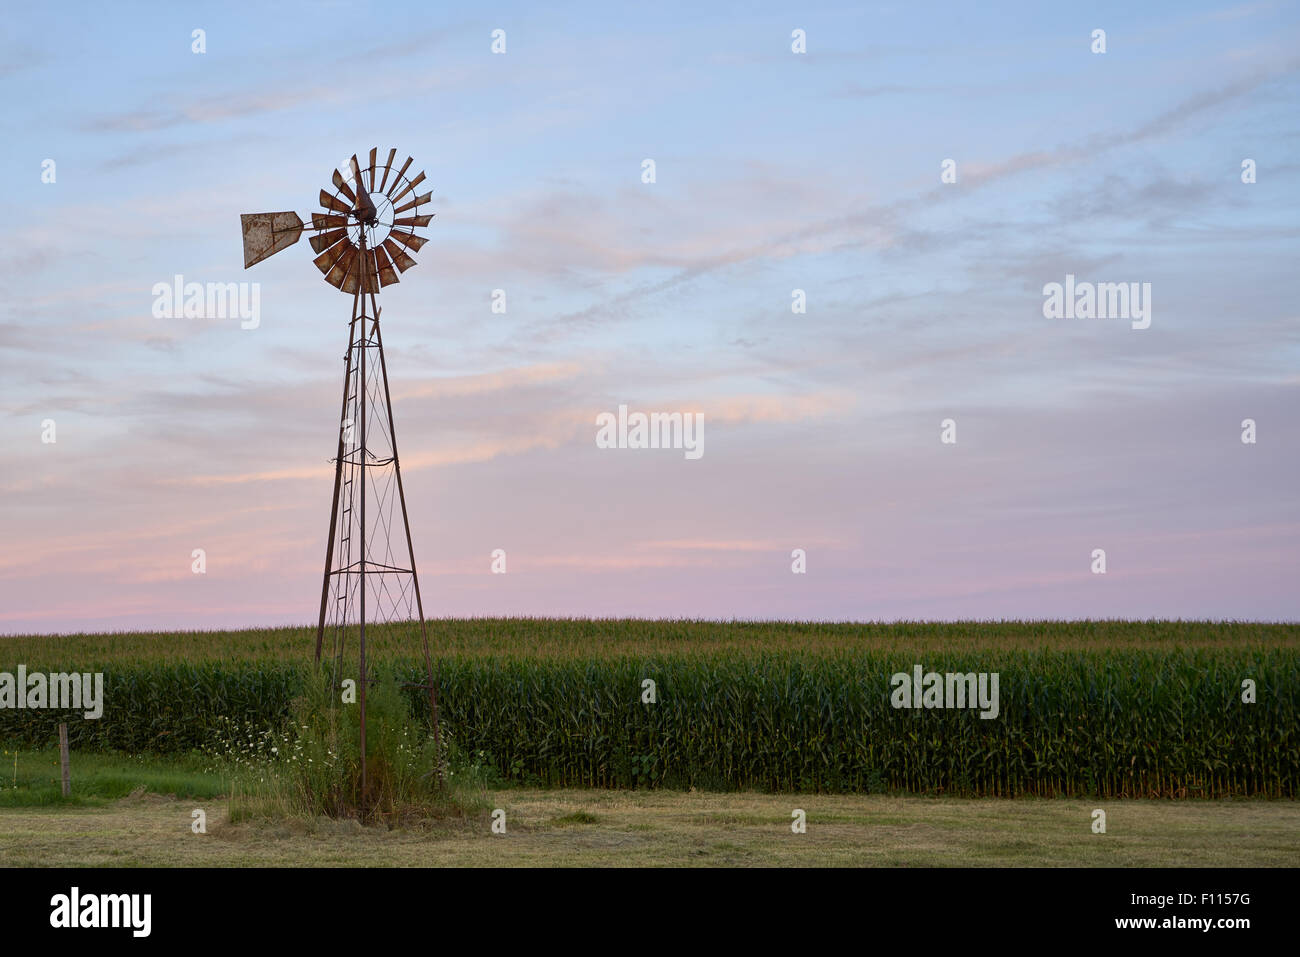 A windmill on a farm in rural IL - Stock Image